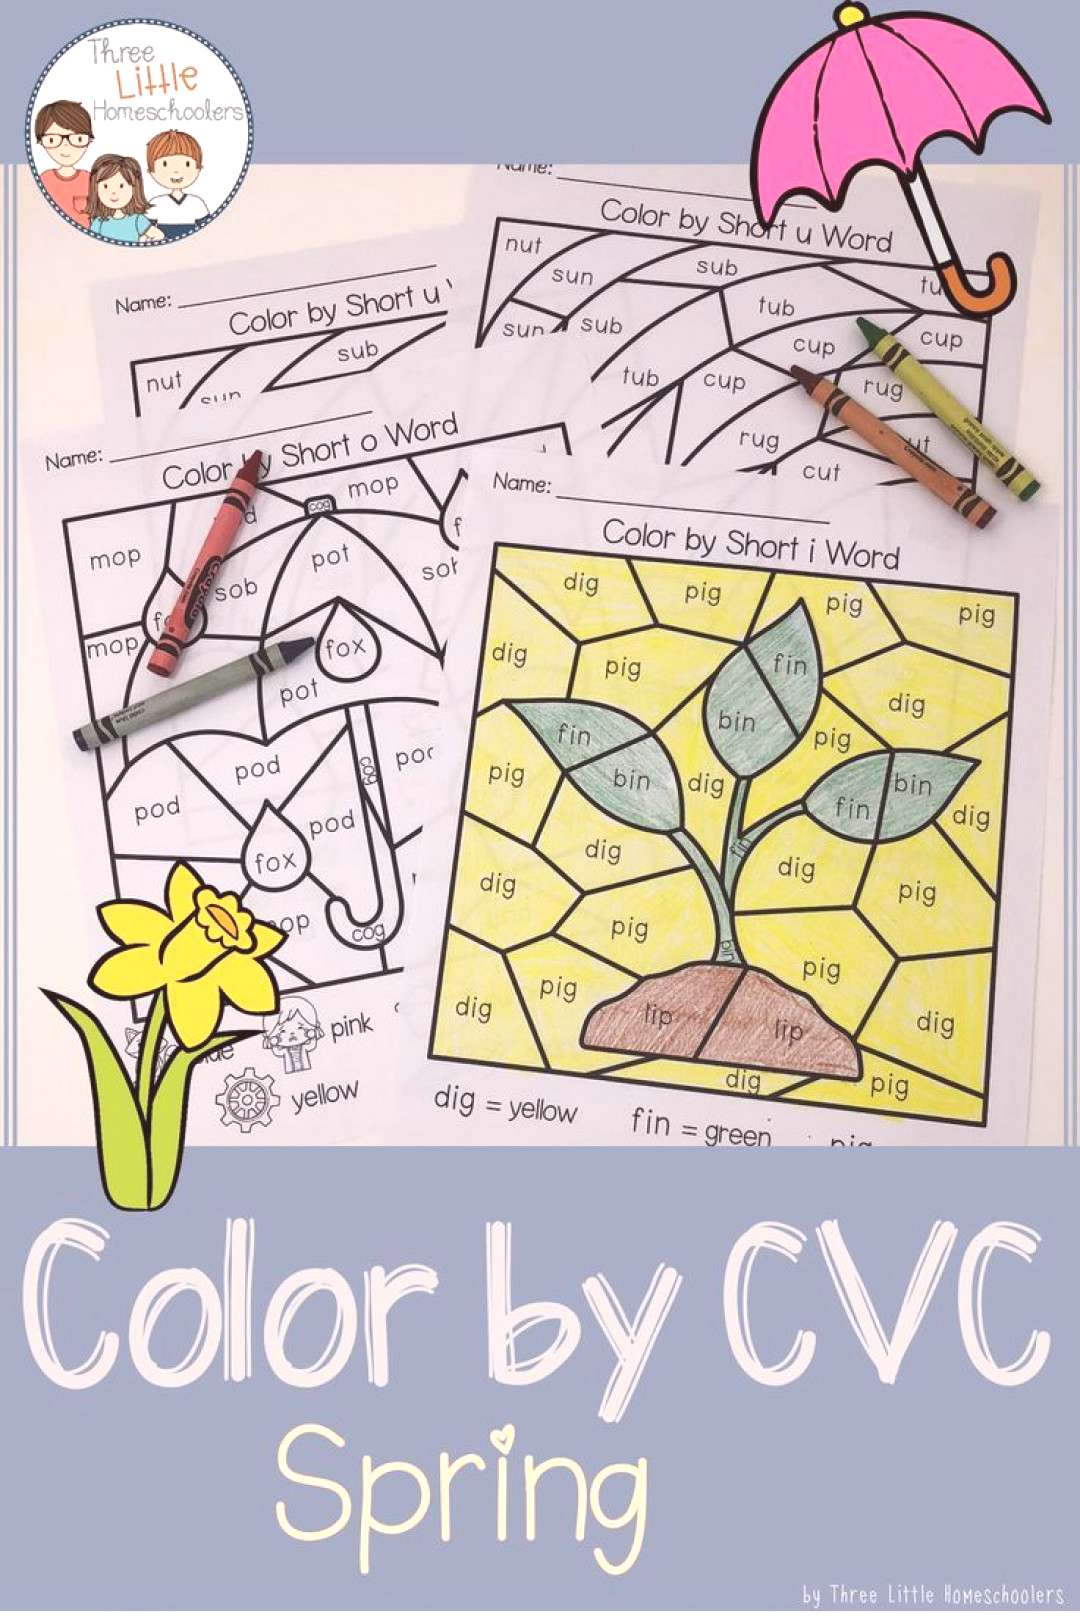 Spring Color by CVC Word Practice CVC words and enjoy Spring with these fun Color by CVC Spring-the